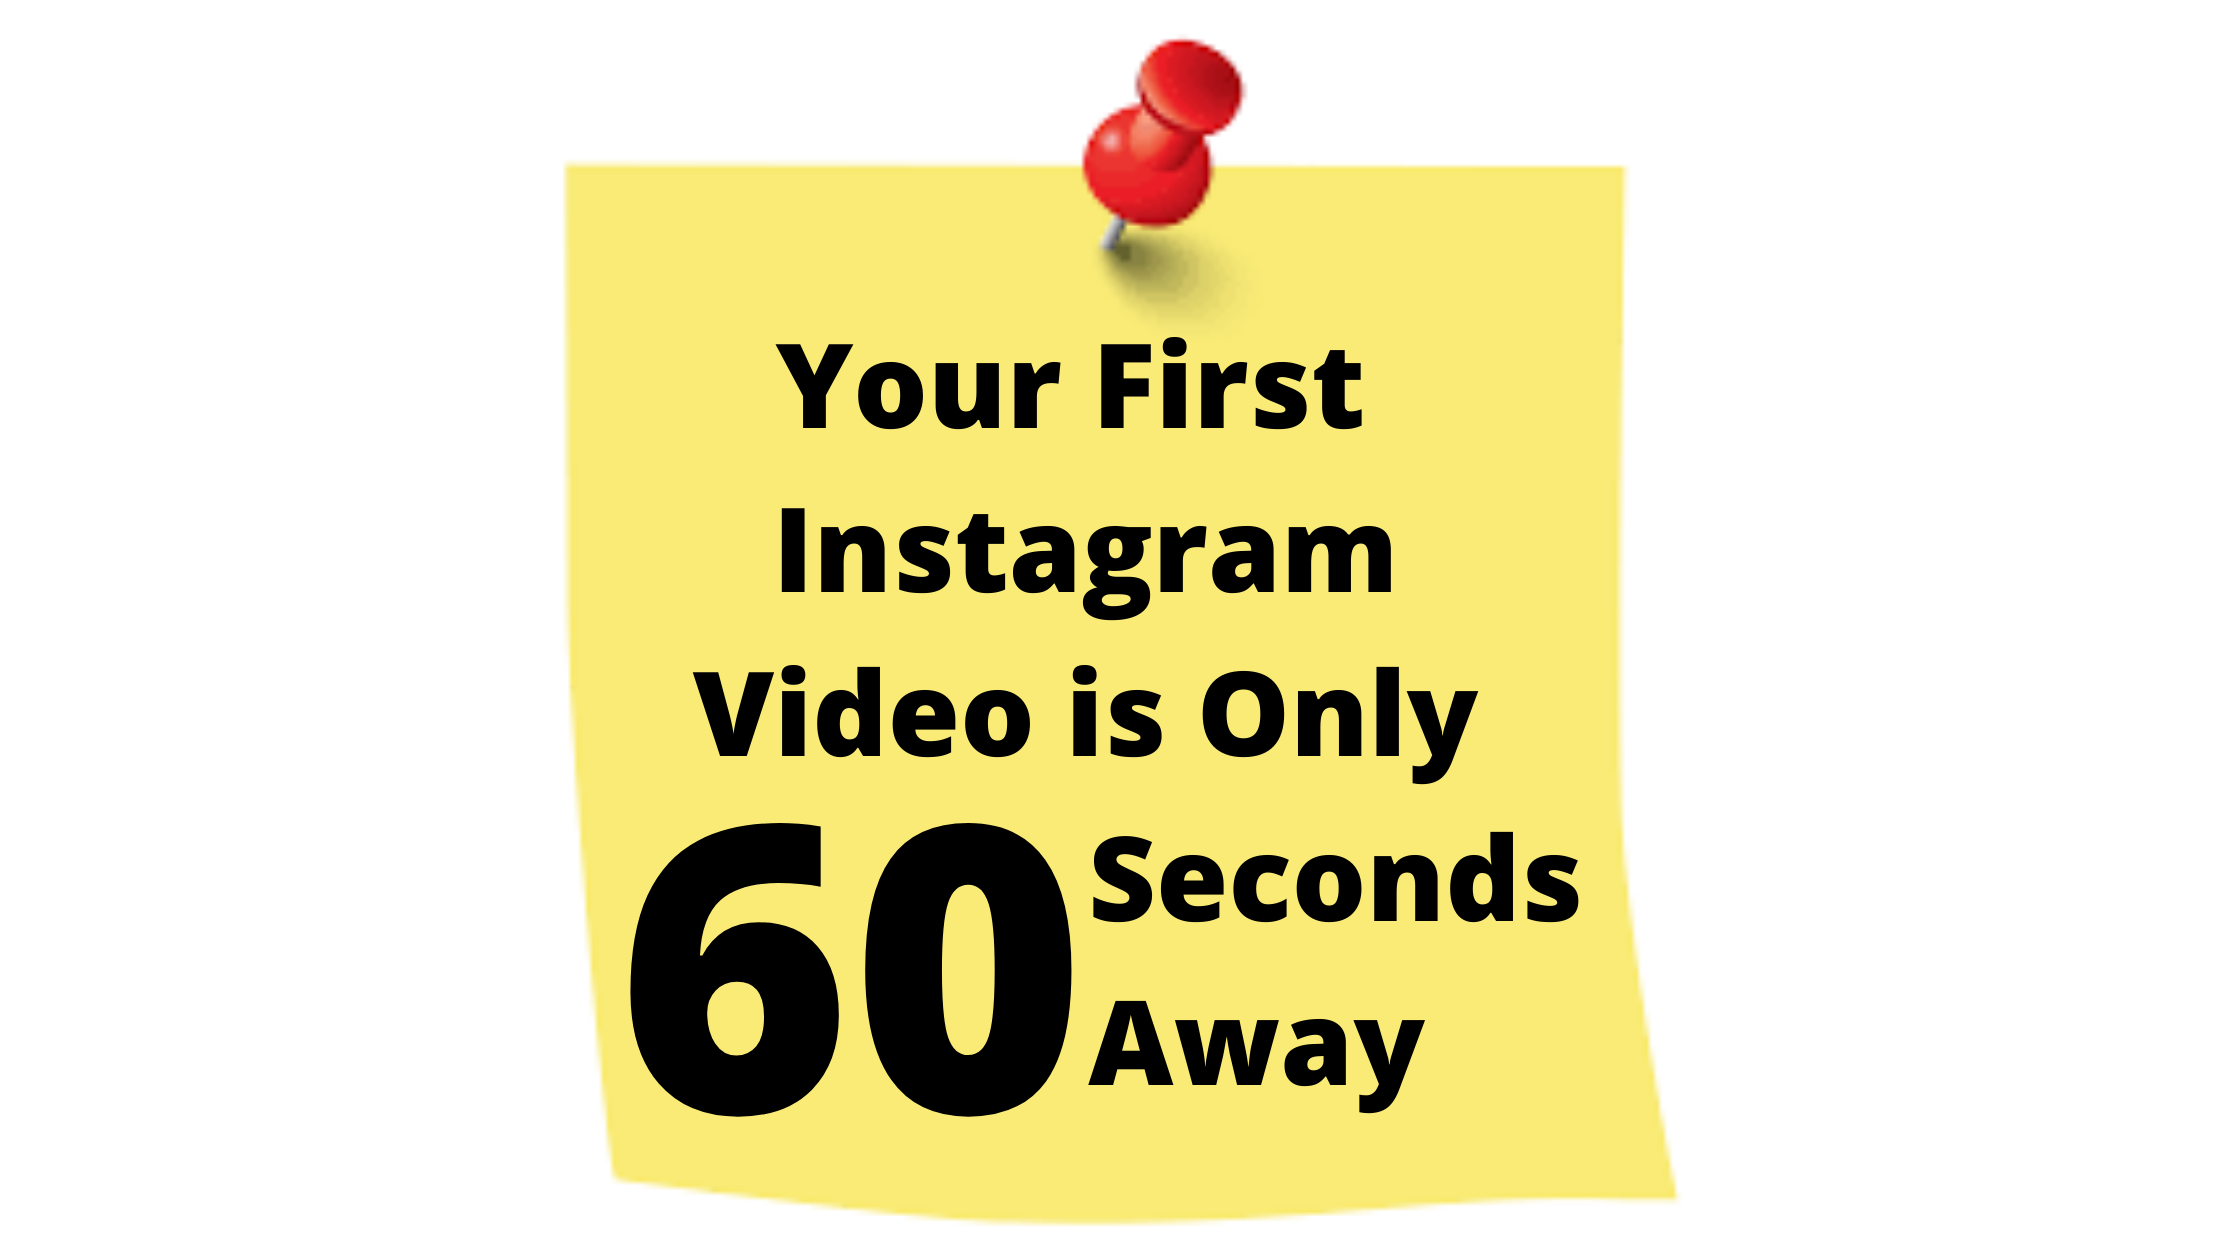 Your First Instagram Video is Only 60 Seconds Away